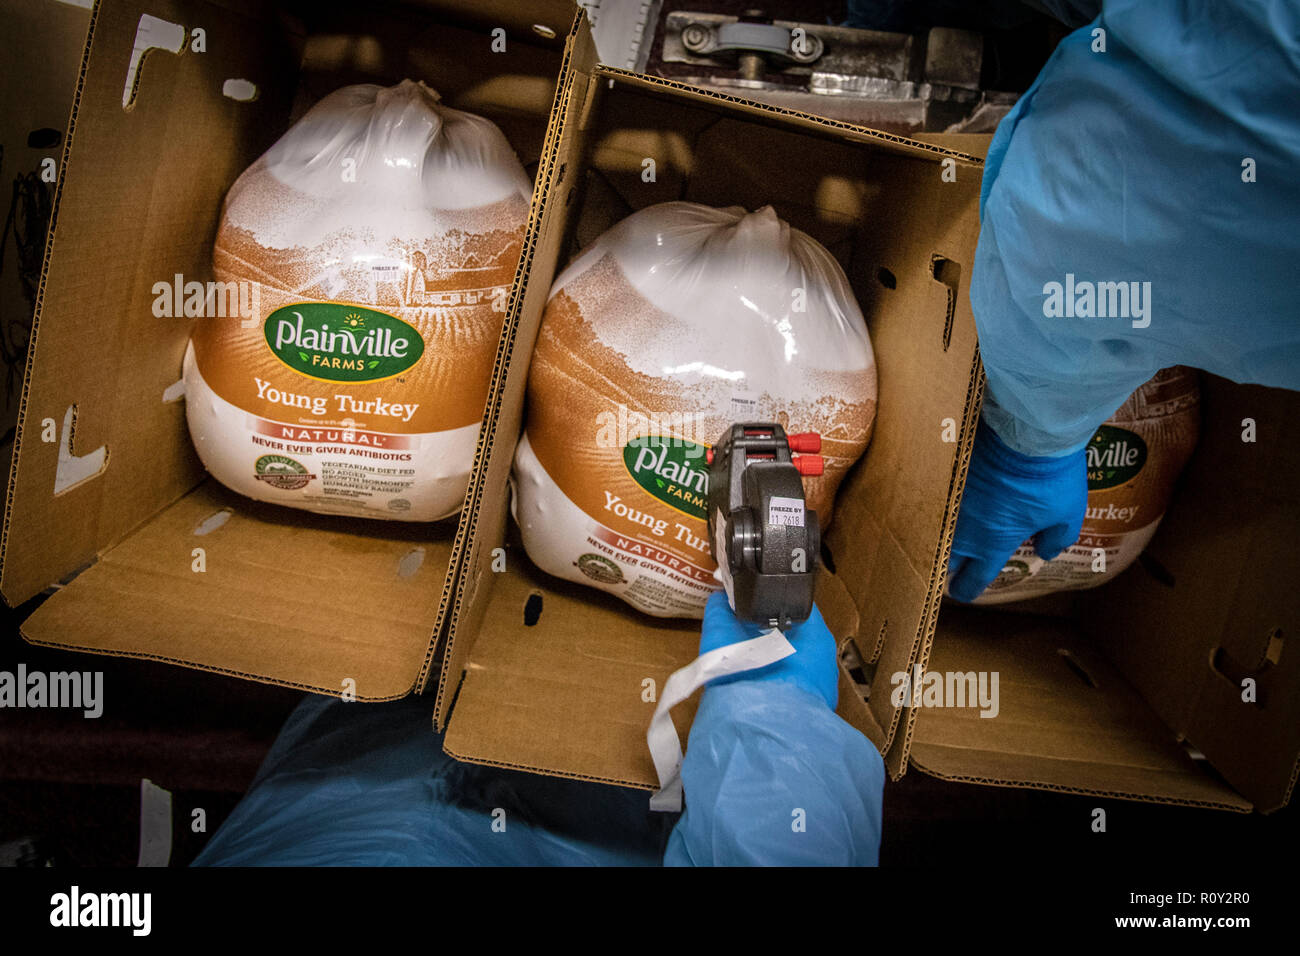 Thanksgiving turkeys are packed and graded by USDA inspectors at Plainville Farms Turkey Processing plant October 31, 2018 in New Oxford, Pennsylvania. - Stock Image